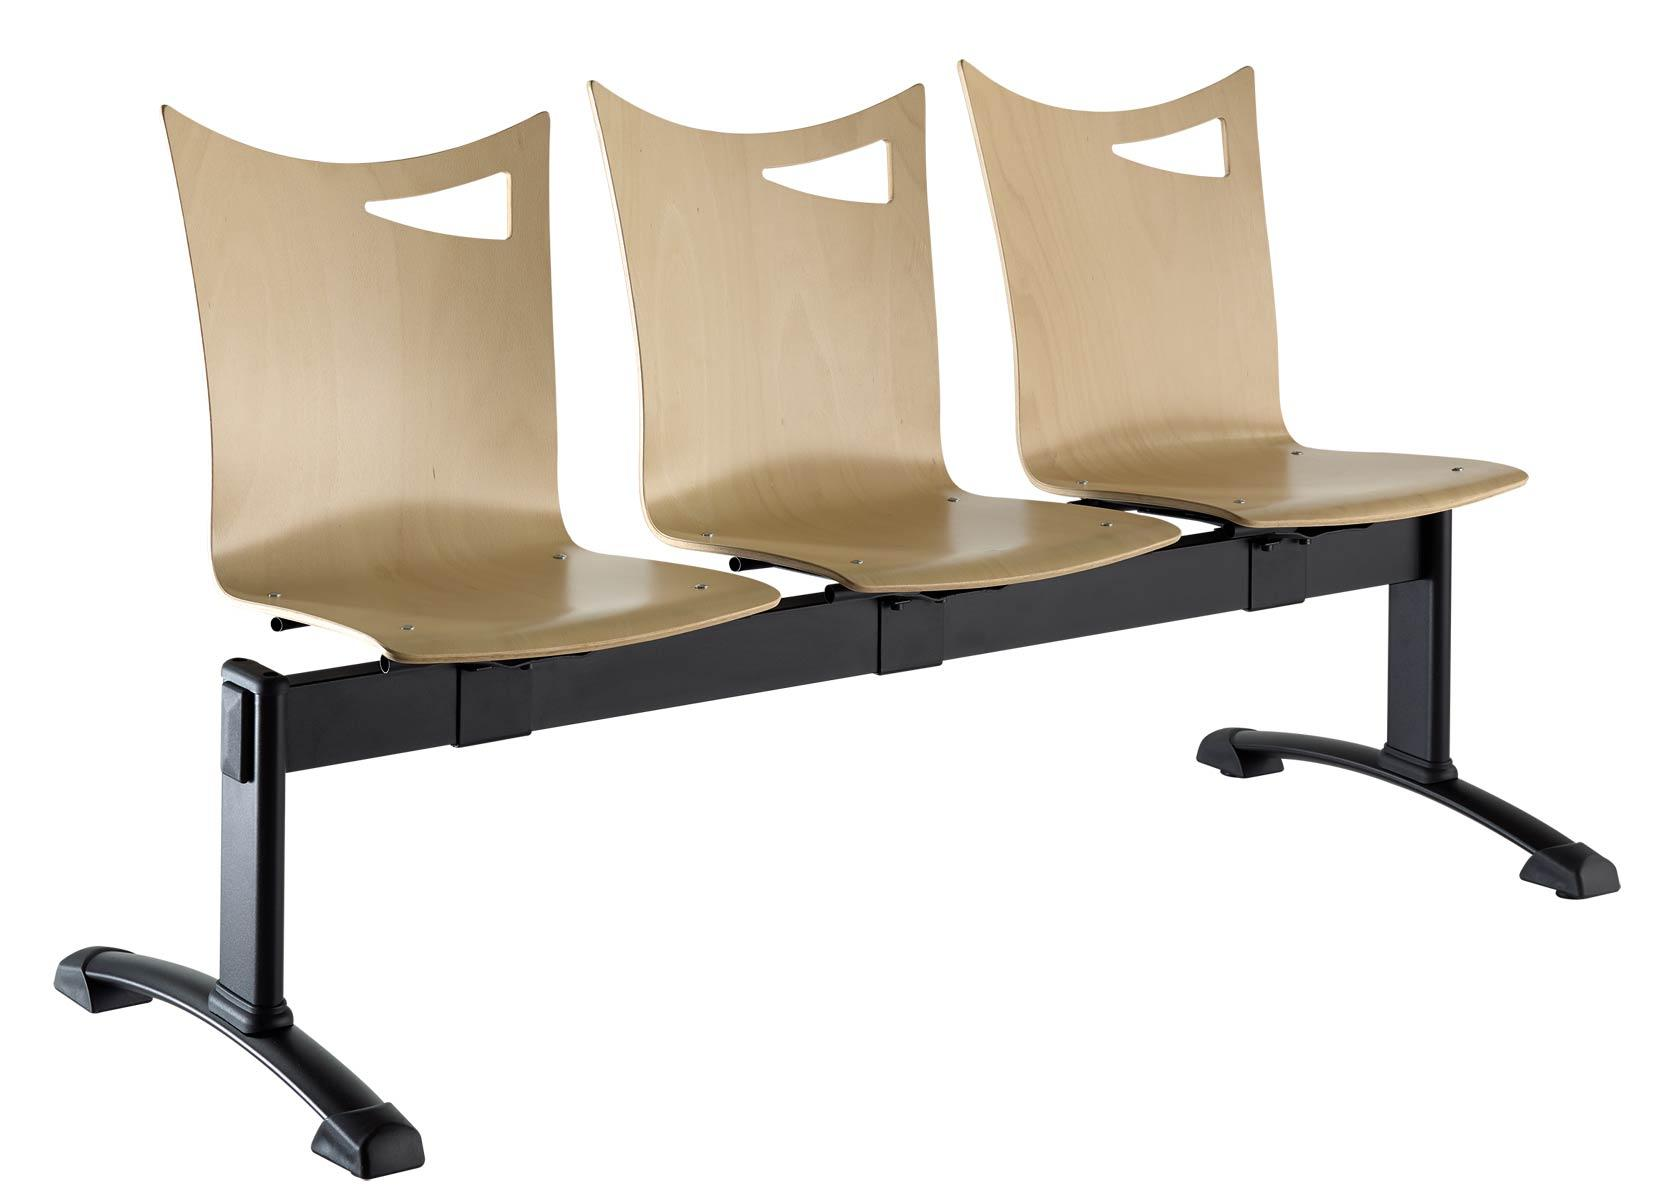 40 Chaise Bois 40 Chaise Poutre Valence Valence nN8y0vOmwP